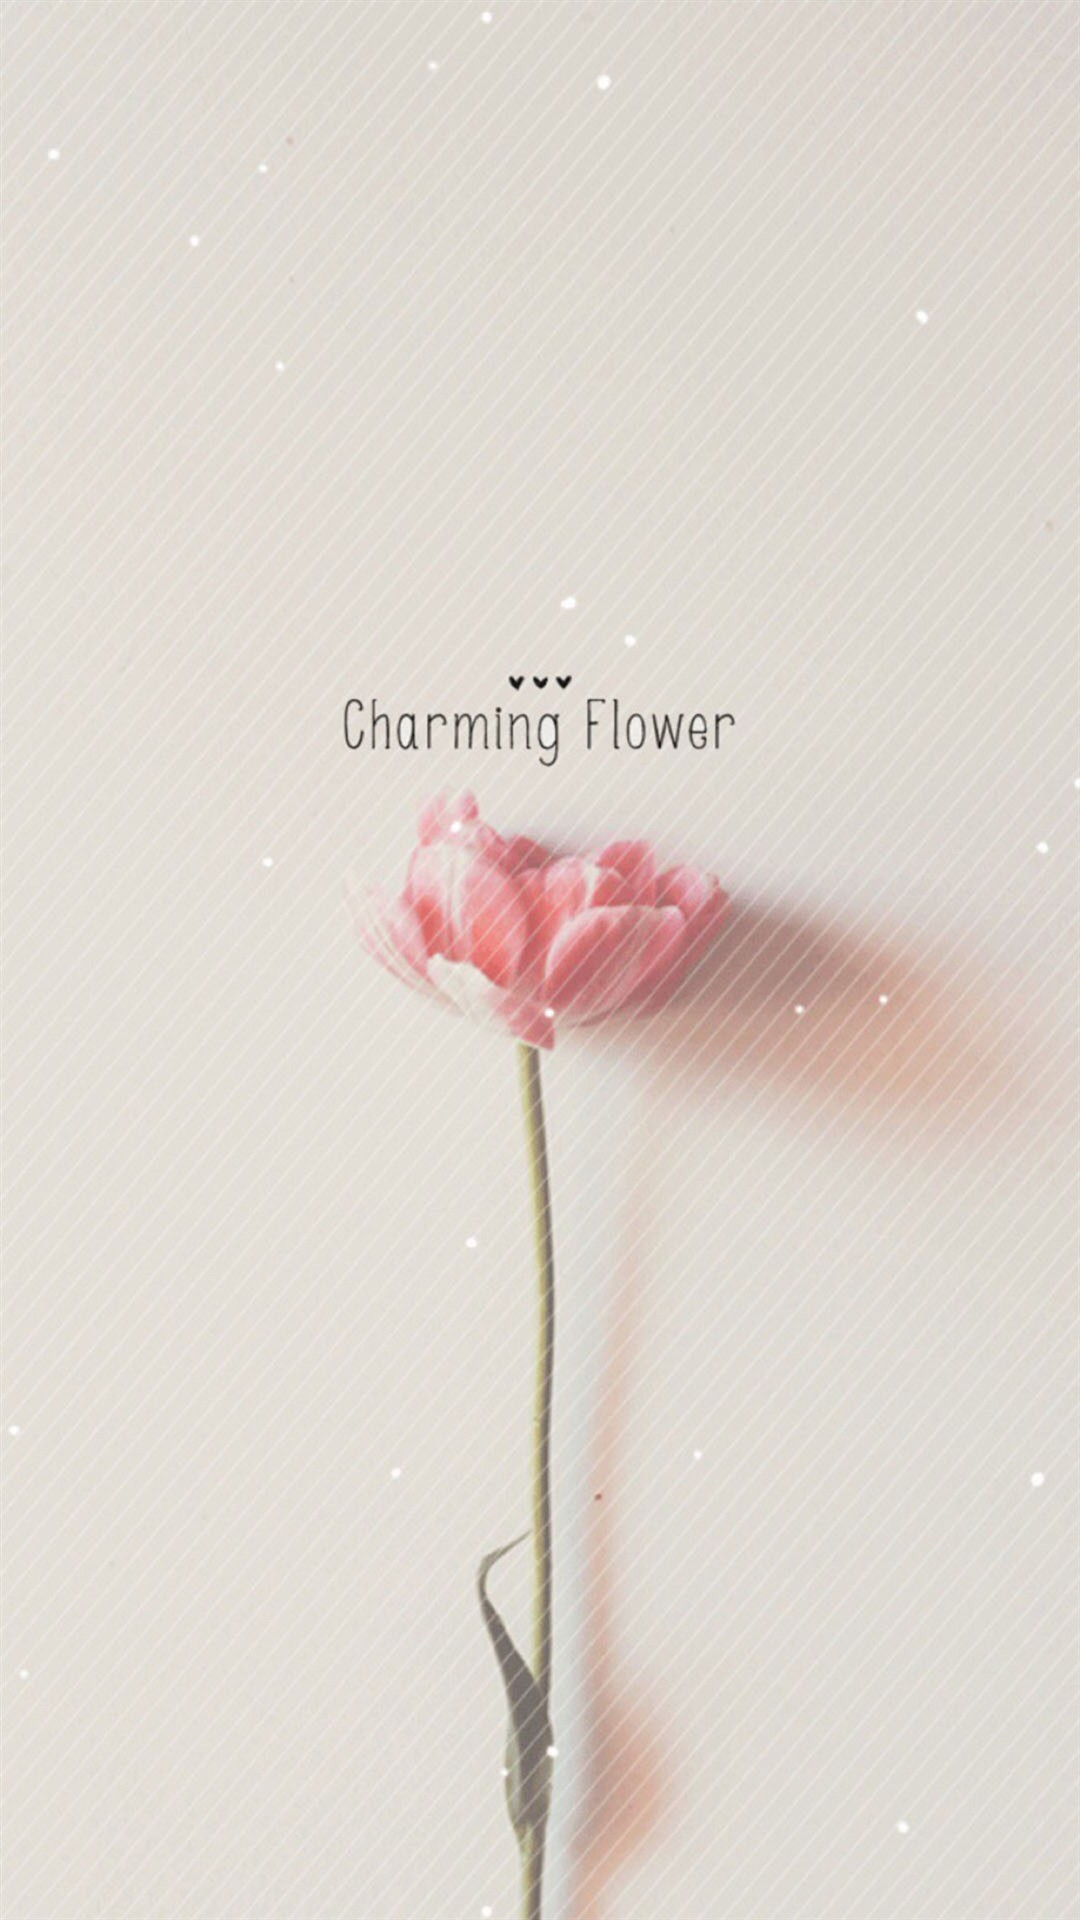 1080x1920 Flower HD Wallpaper IPhone 6 Plus 391